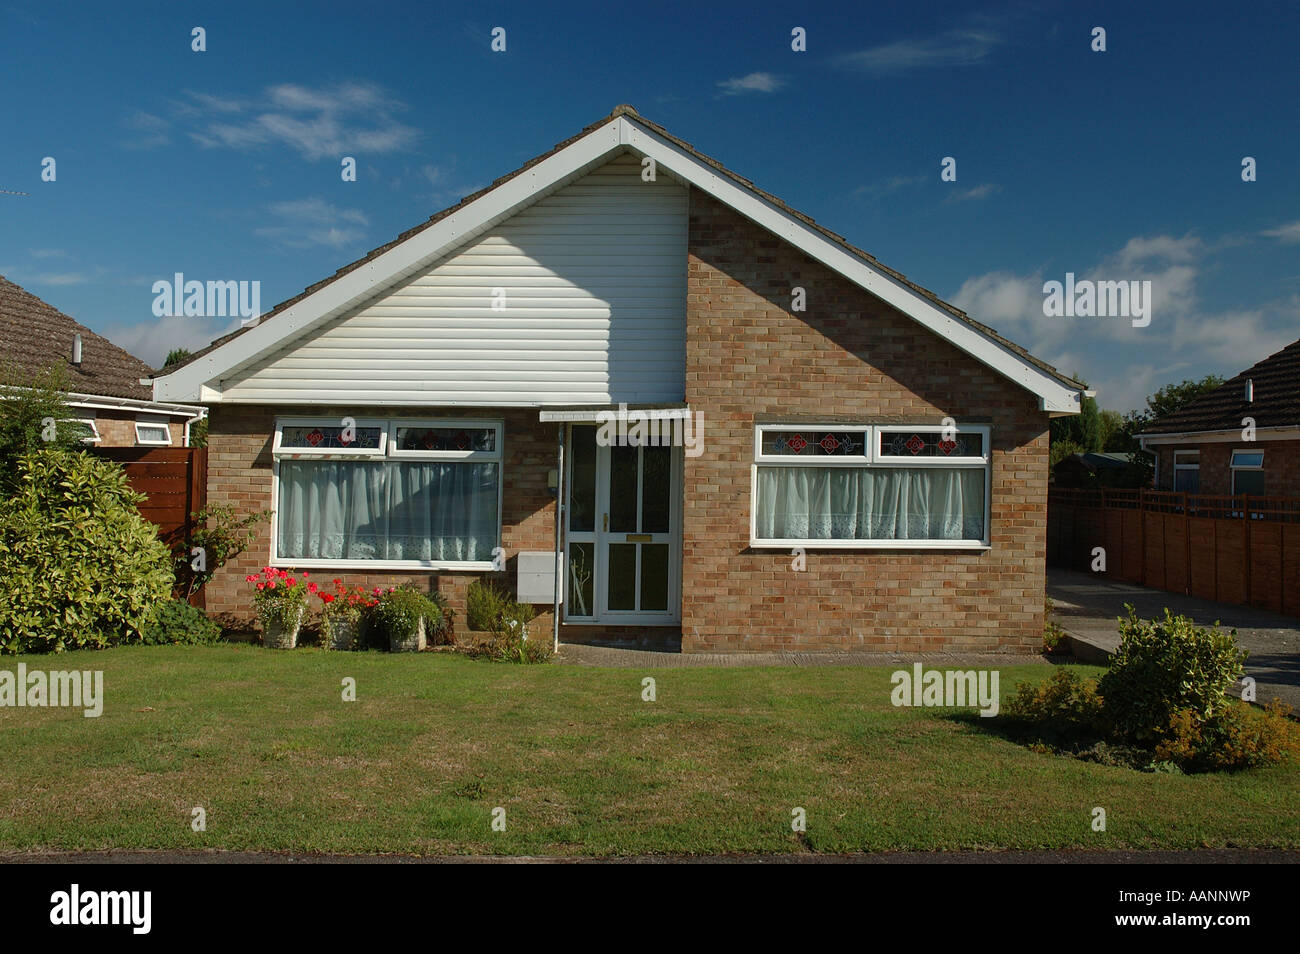 Traditional 60 / 70s bungalow - Stock Image